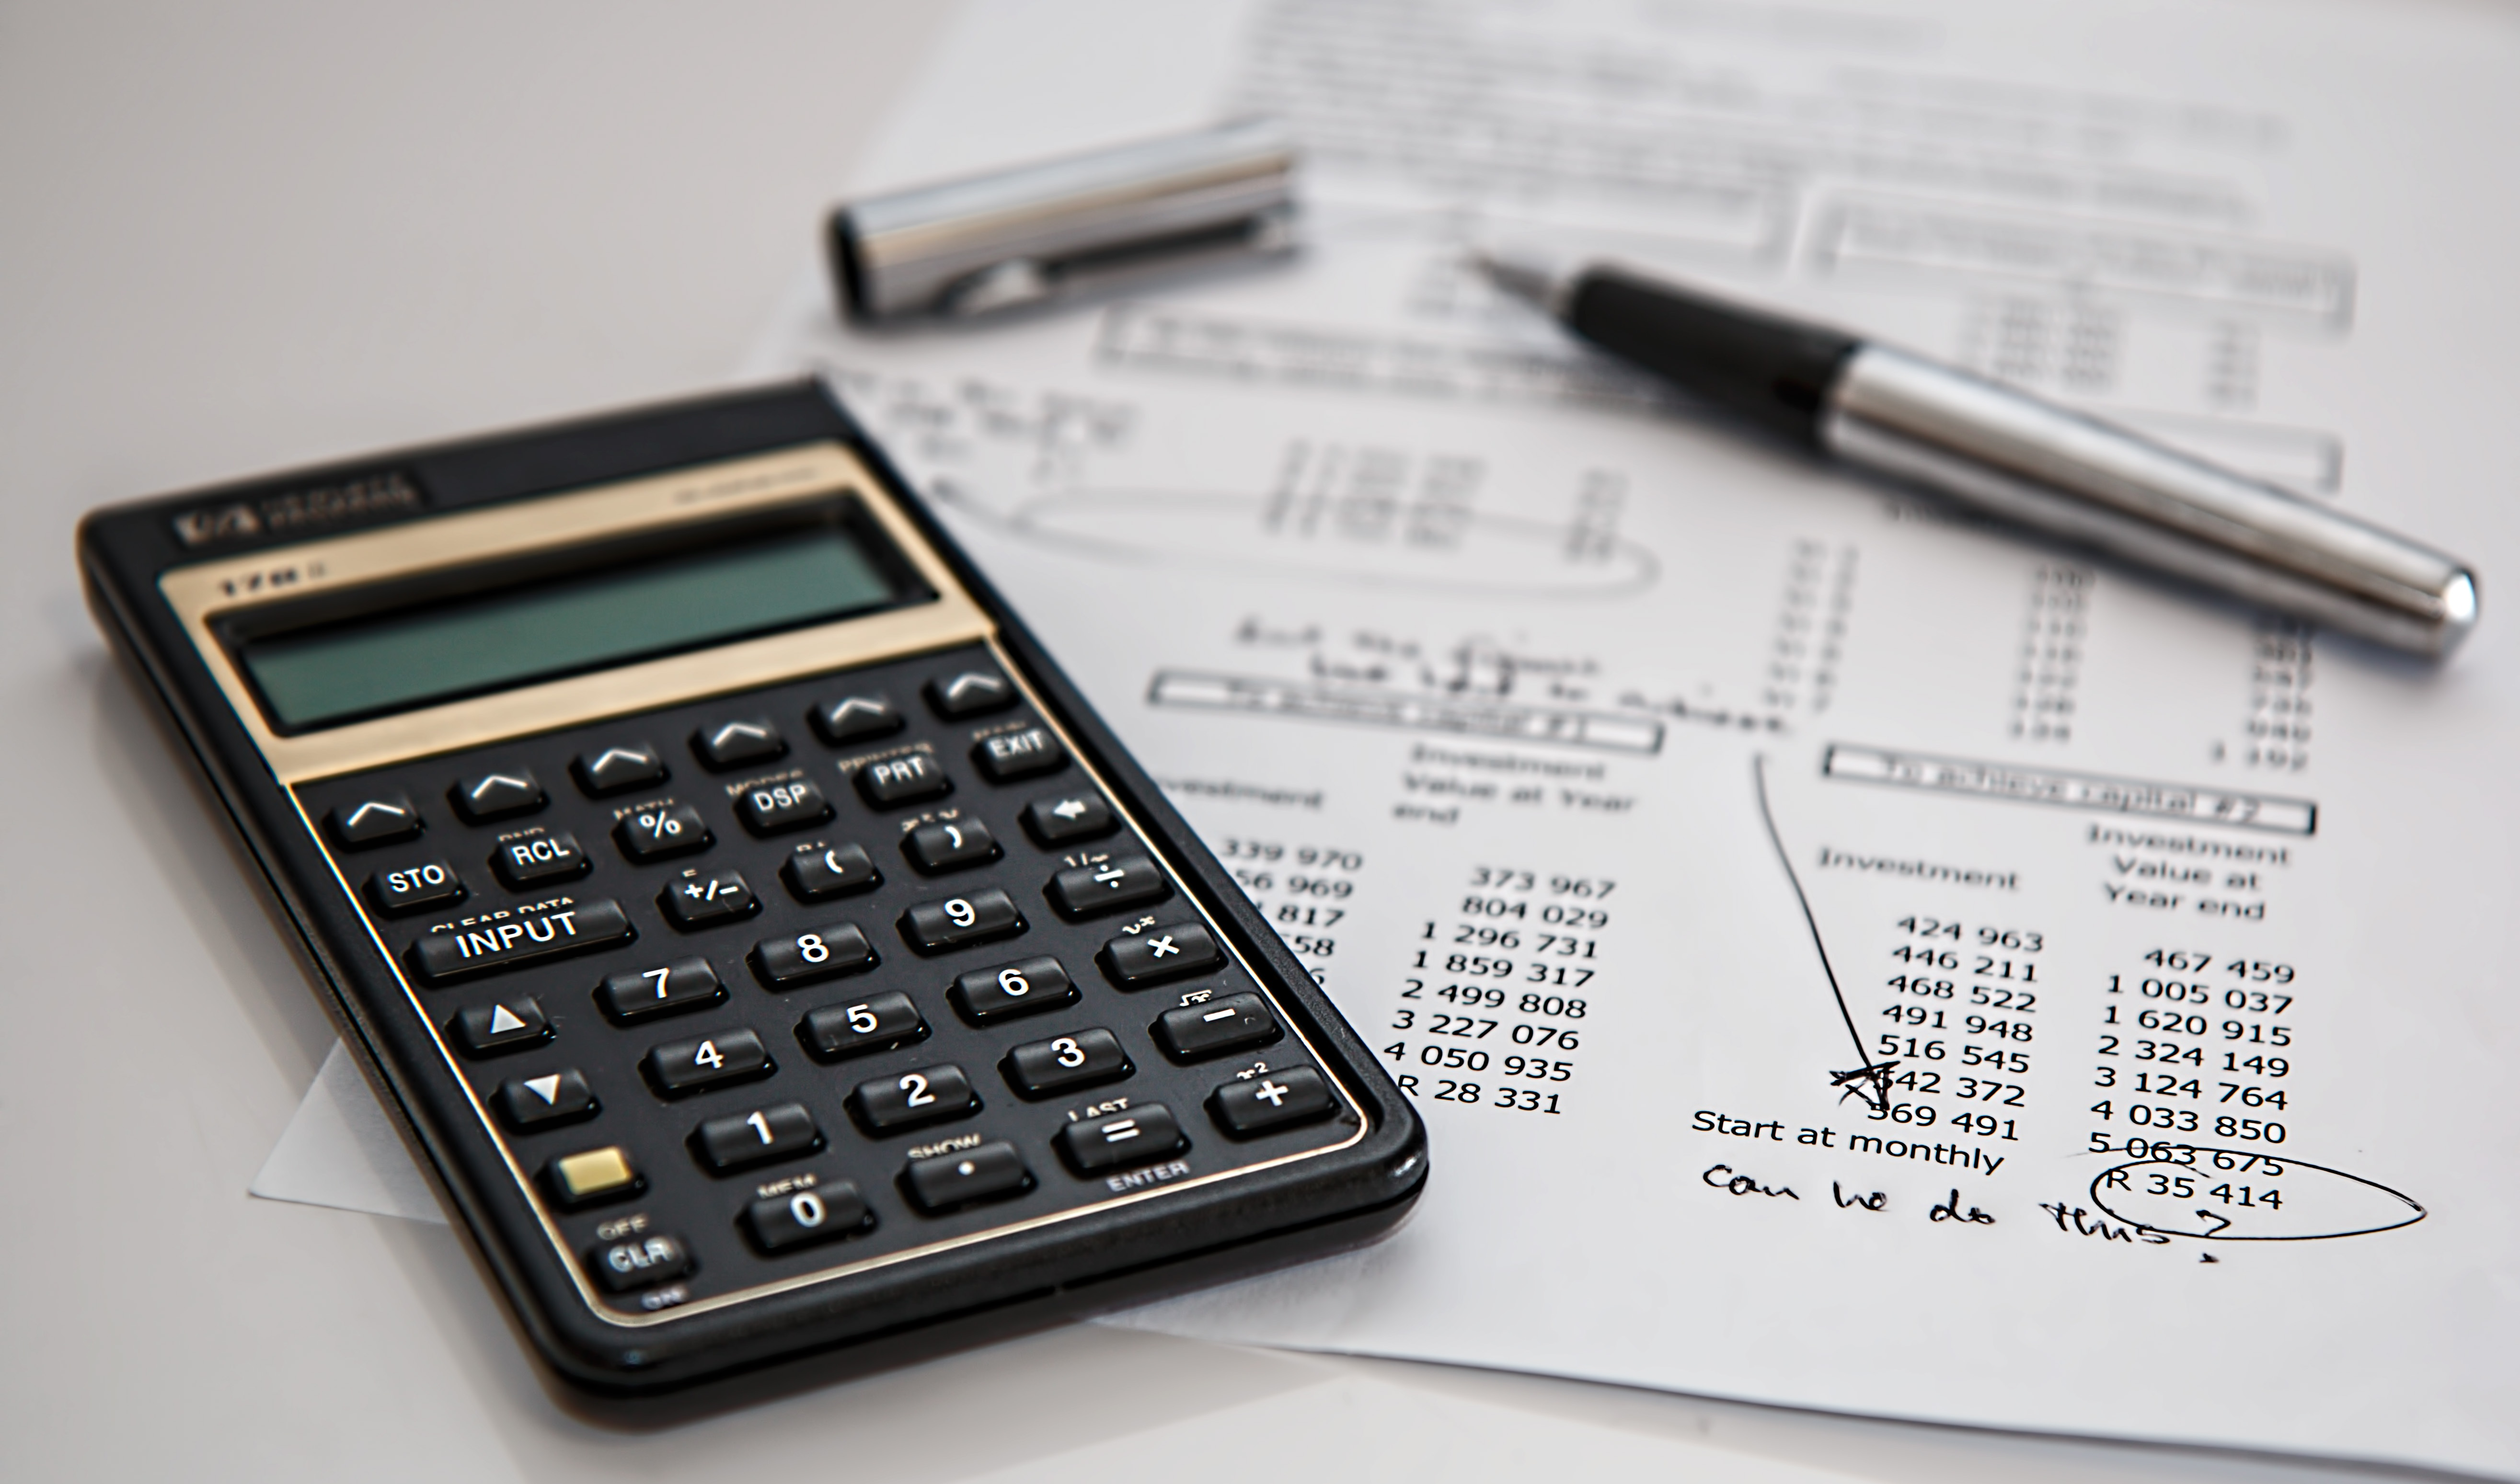 Preliminary Accounting & Bookkeeping - Income Tax Help - Calgary, AB image